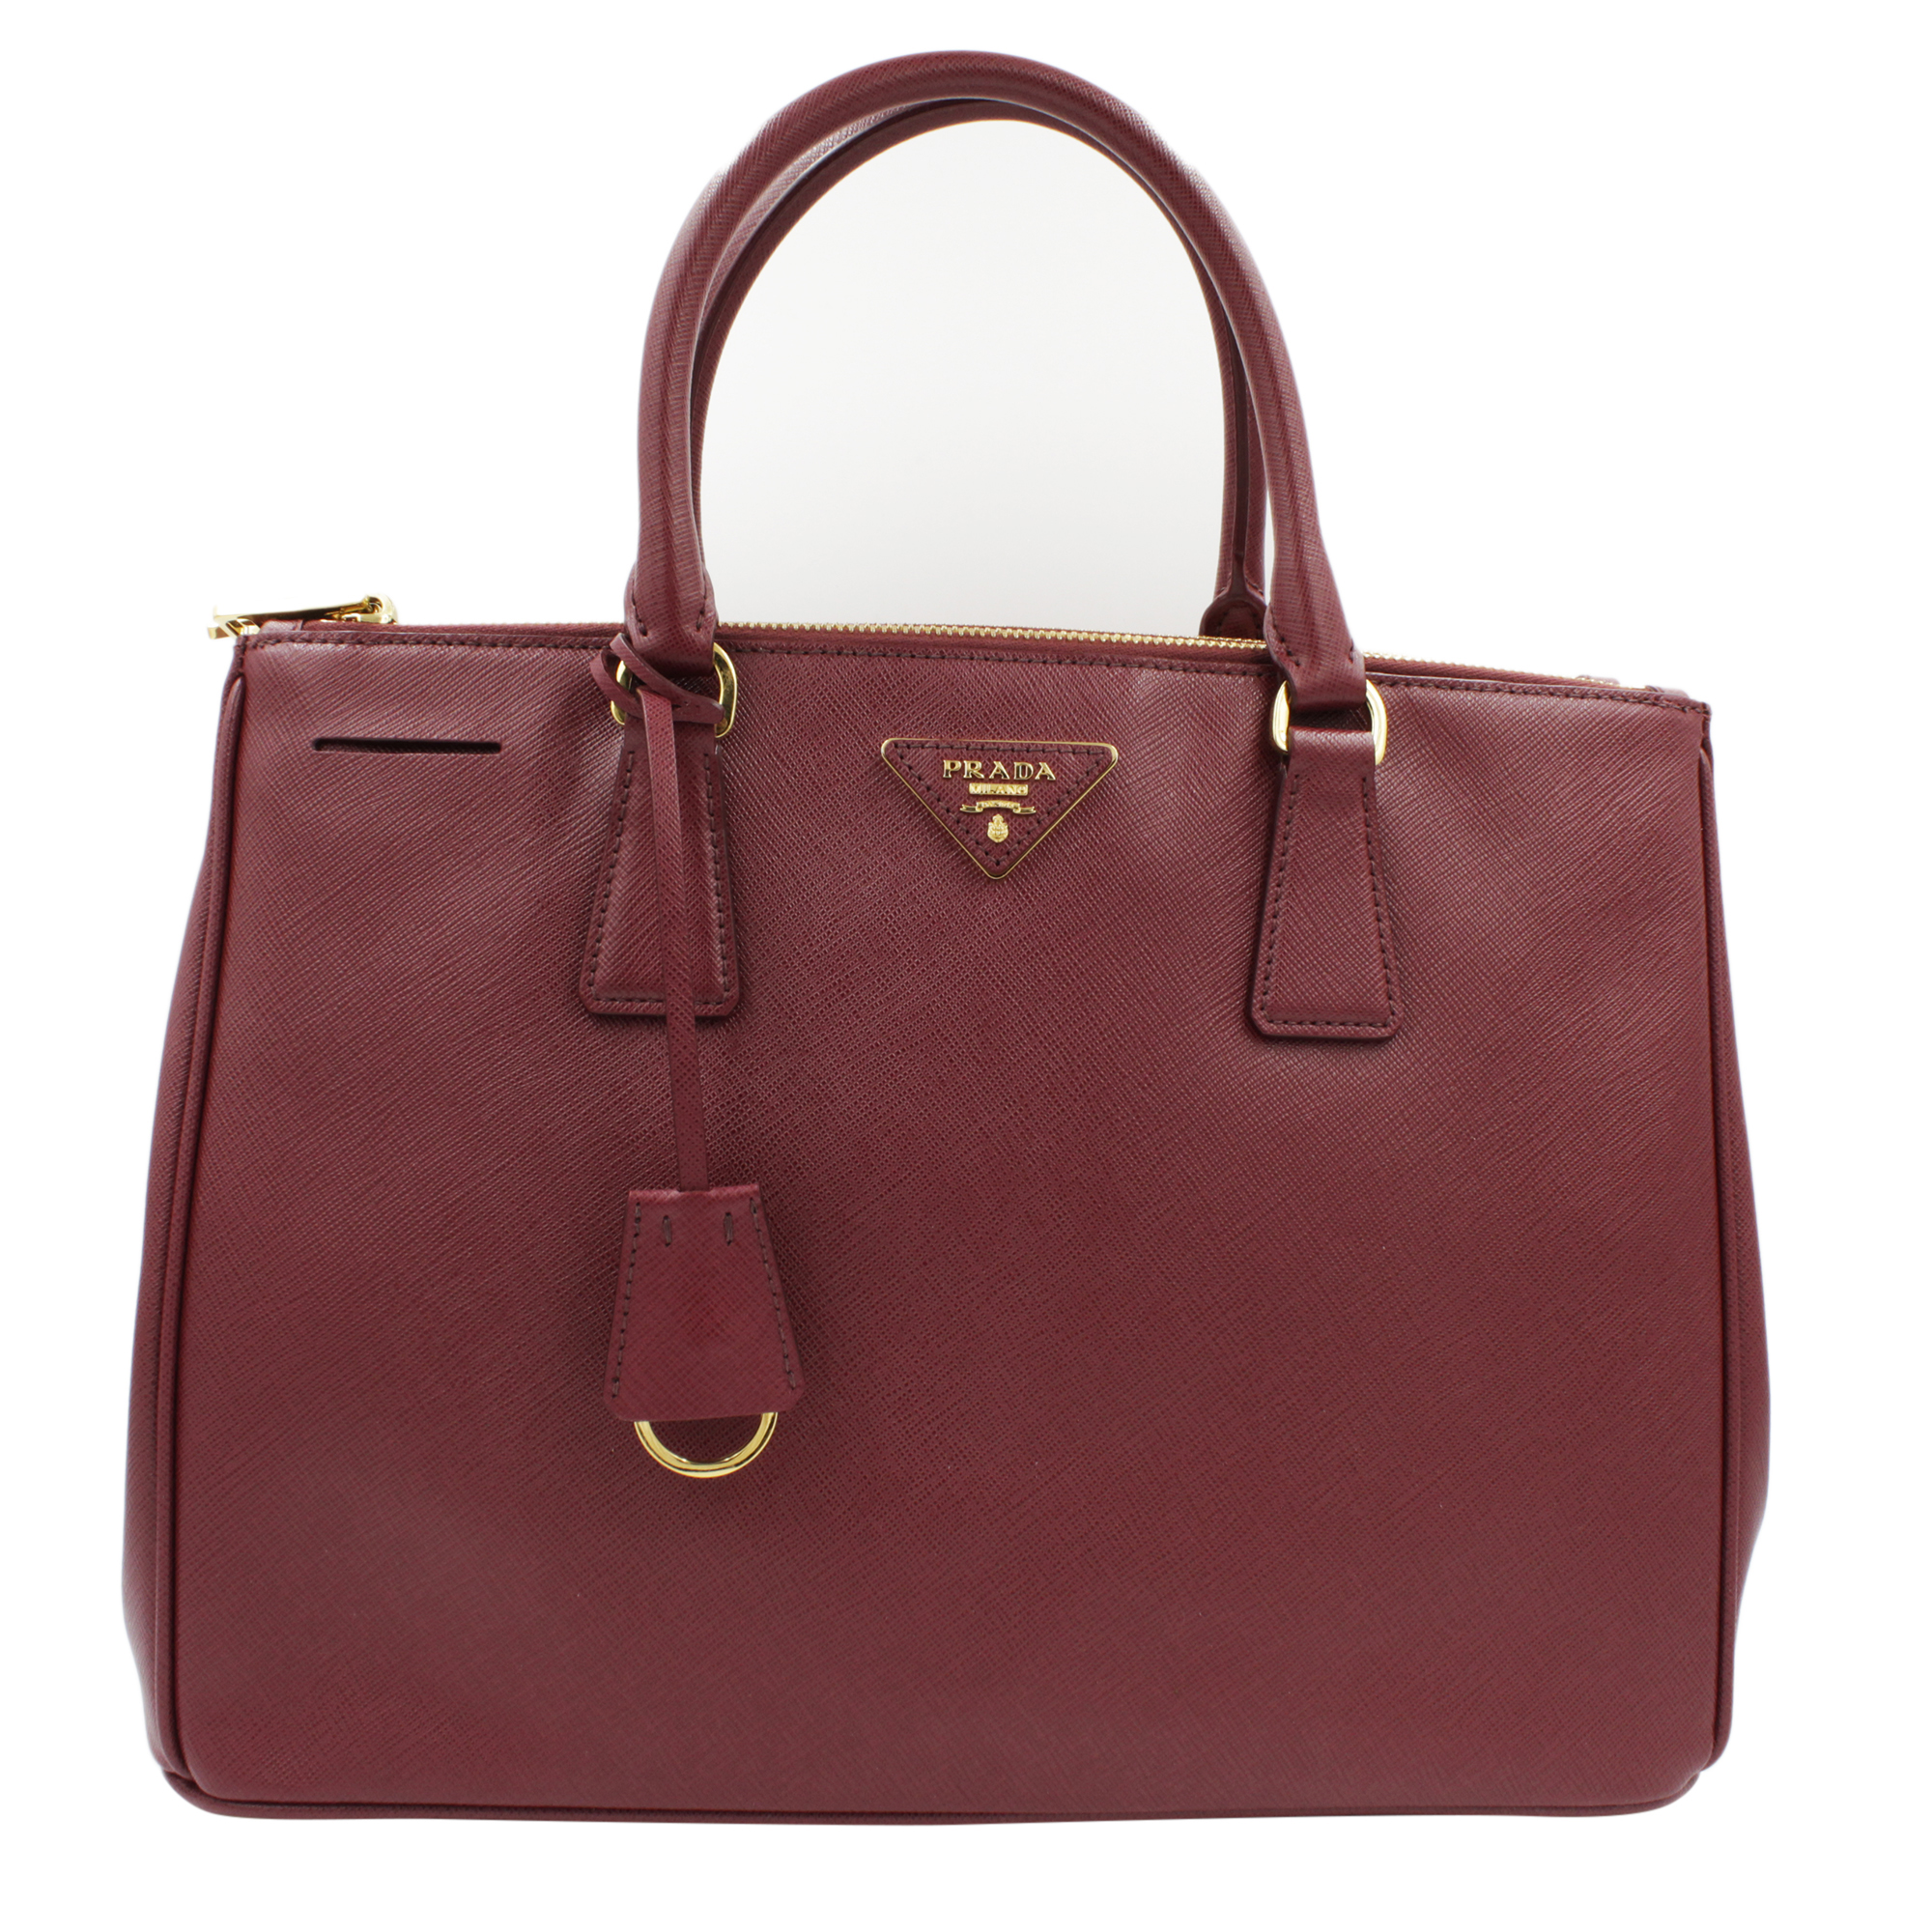 7a2106313250 Details about Prada 1BA274 Galleria Cherry Saffiano Leather Women s  Convertible Tote Bag